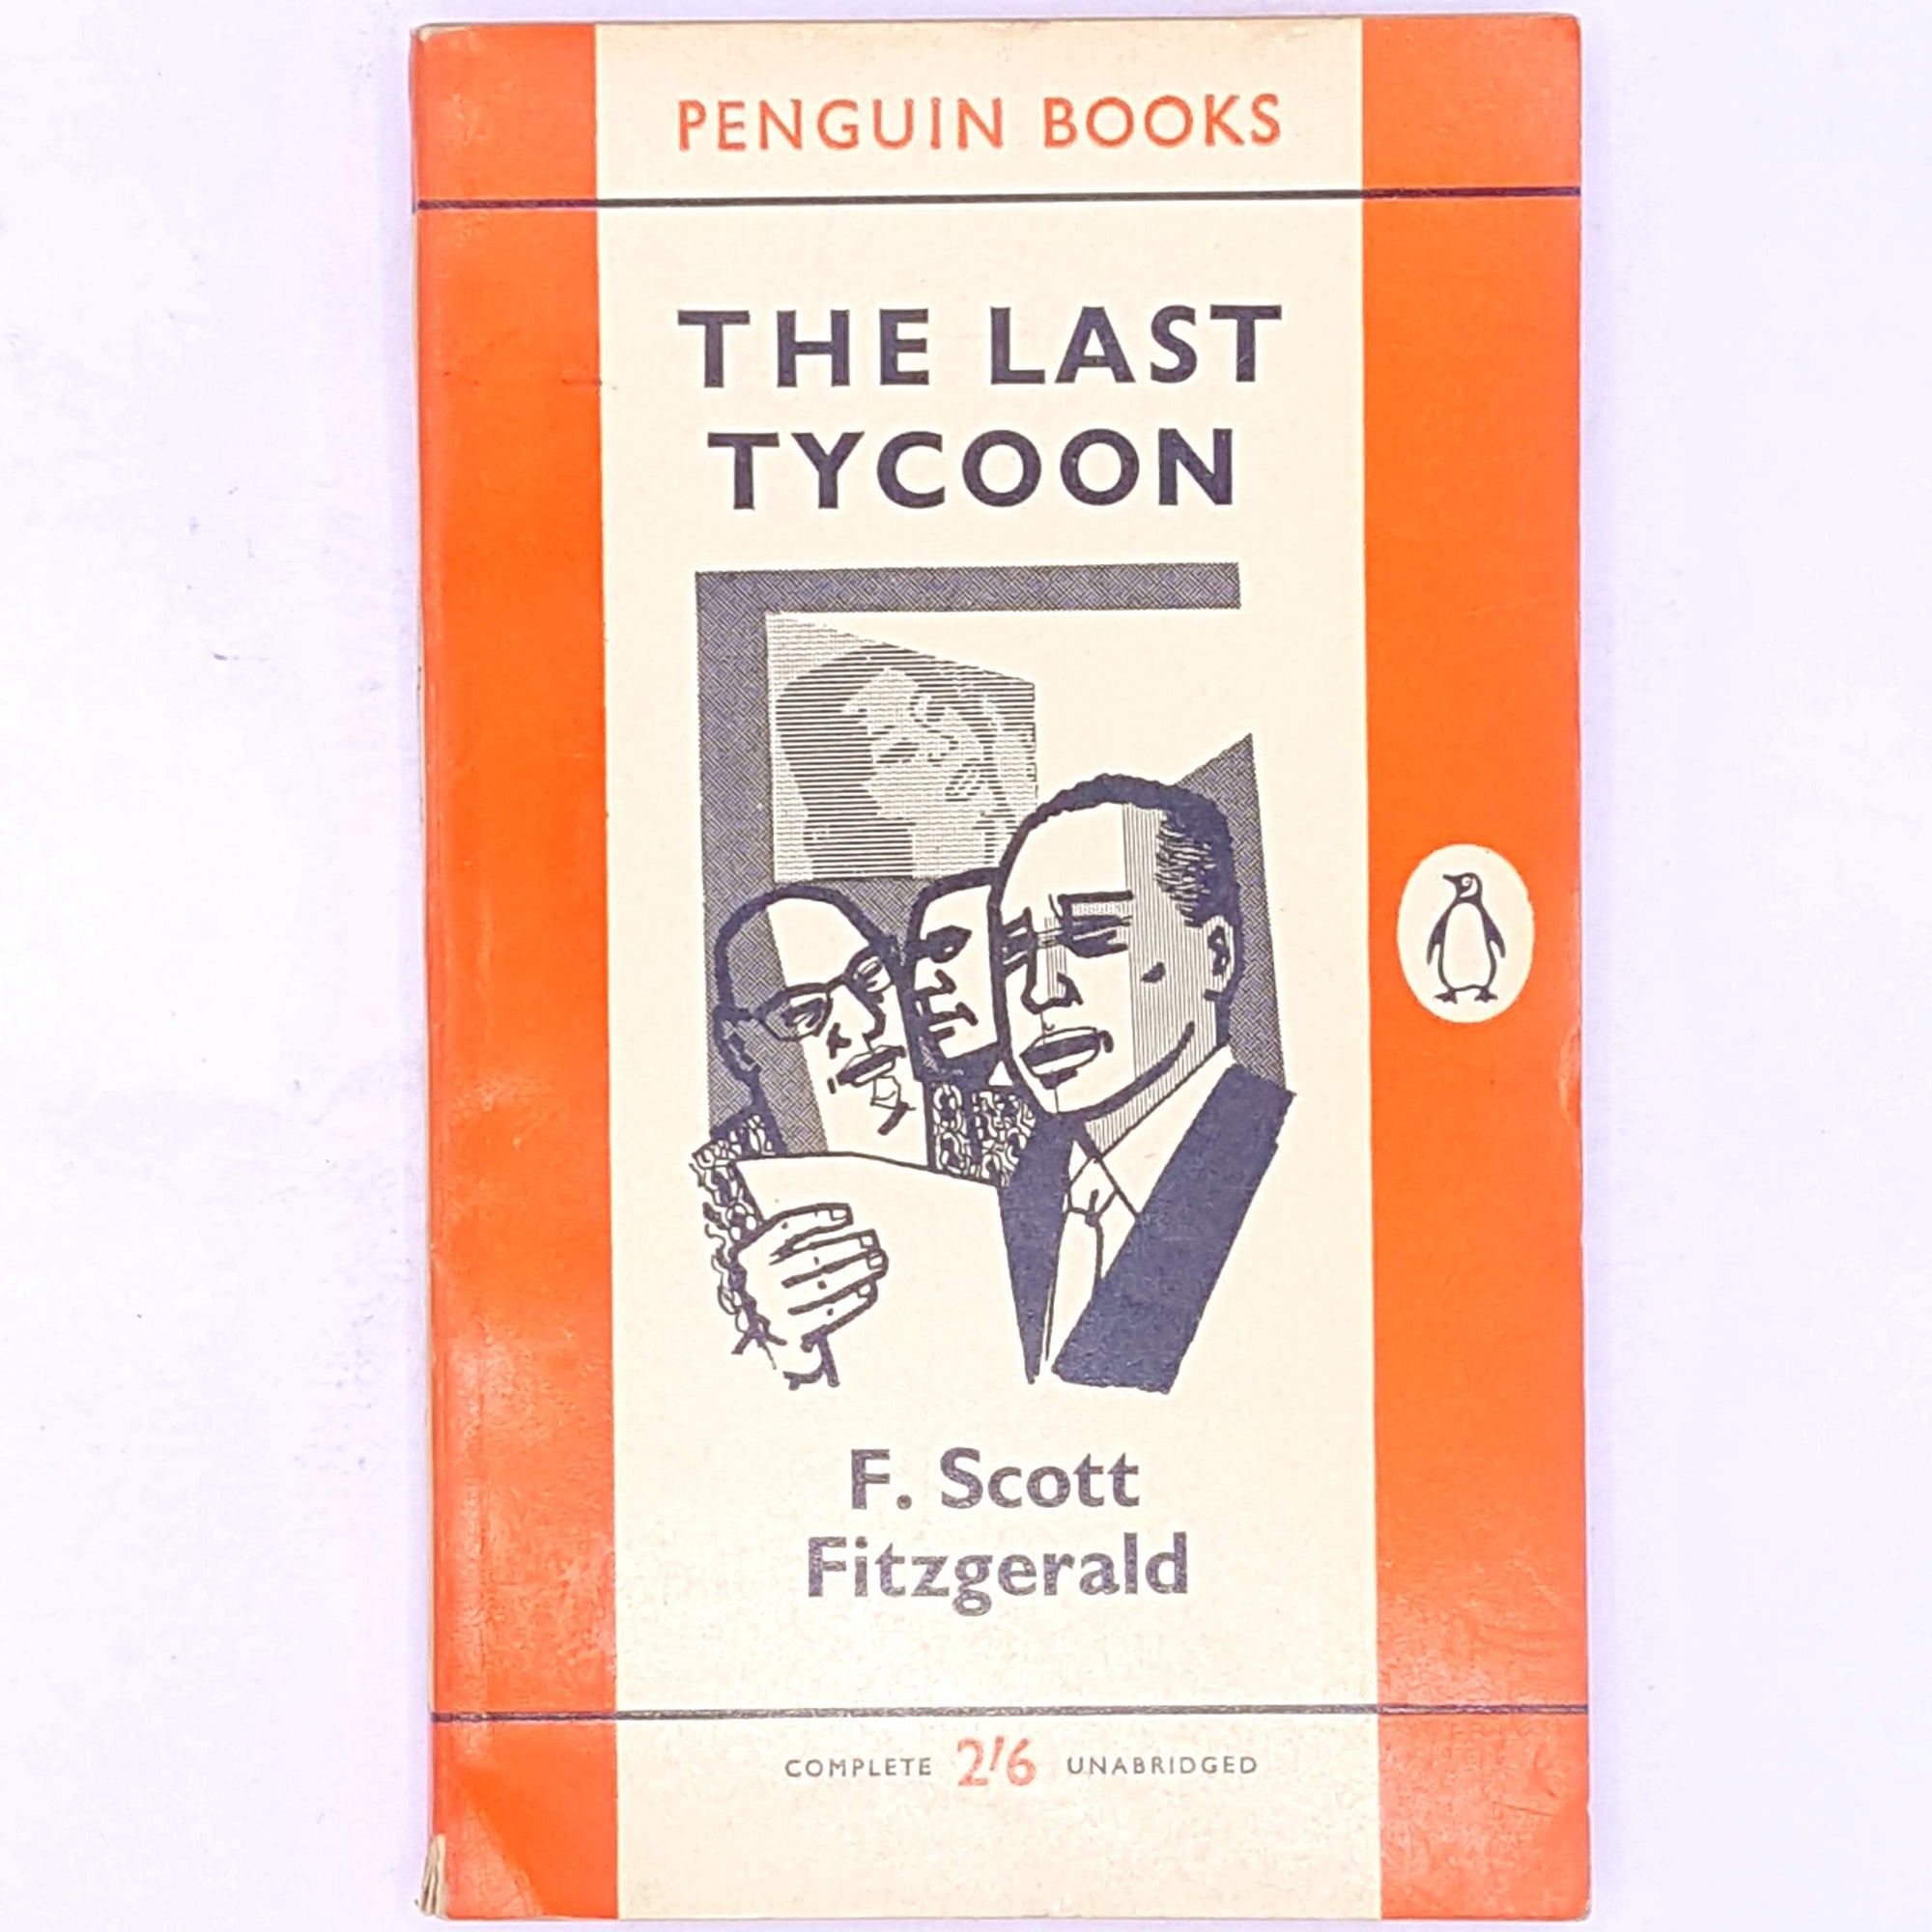 Penguin Books - The Last Tycoon by F. Scott Fitzgerald